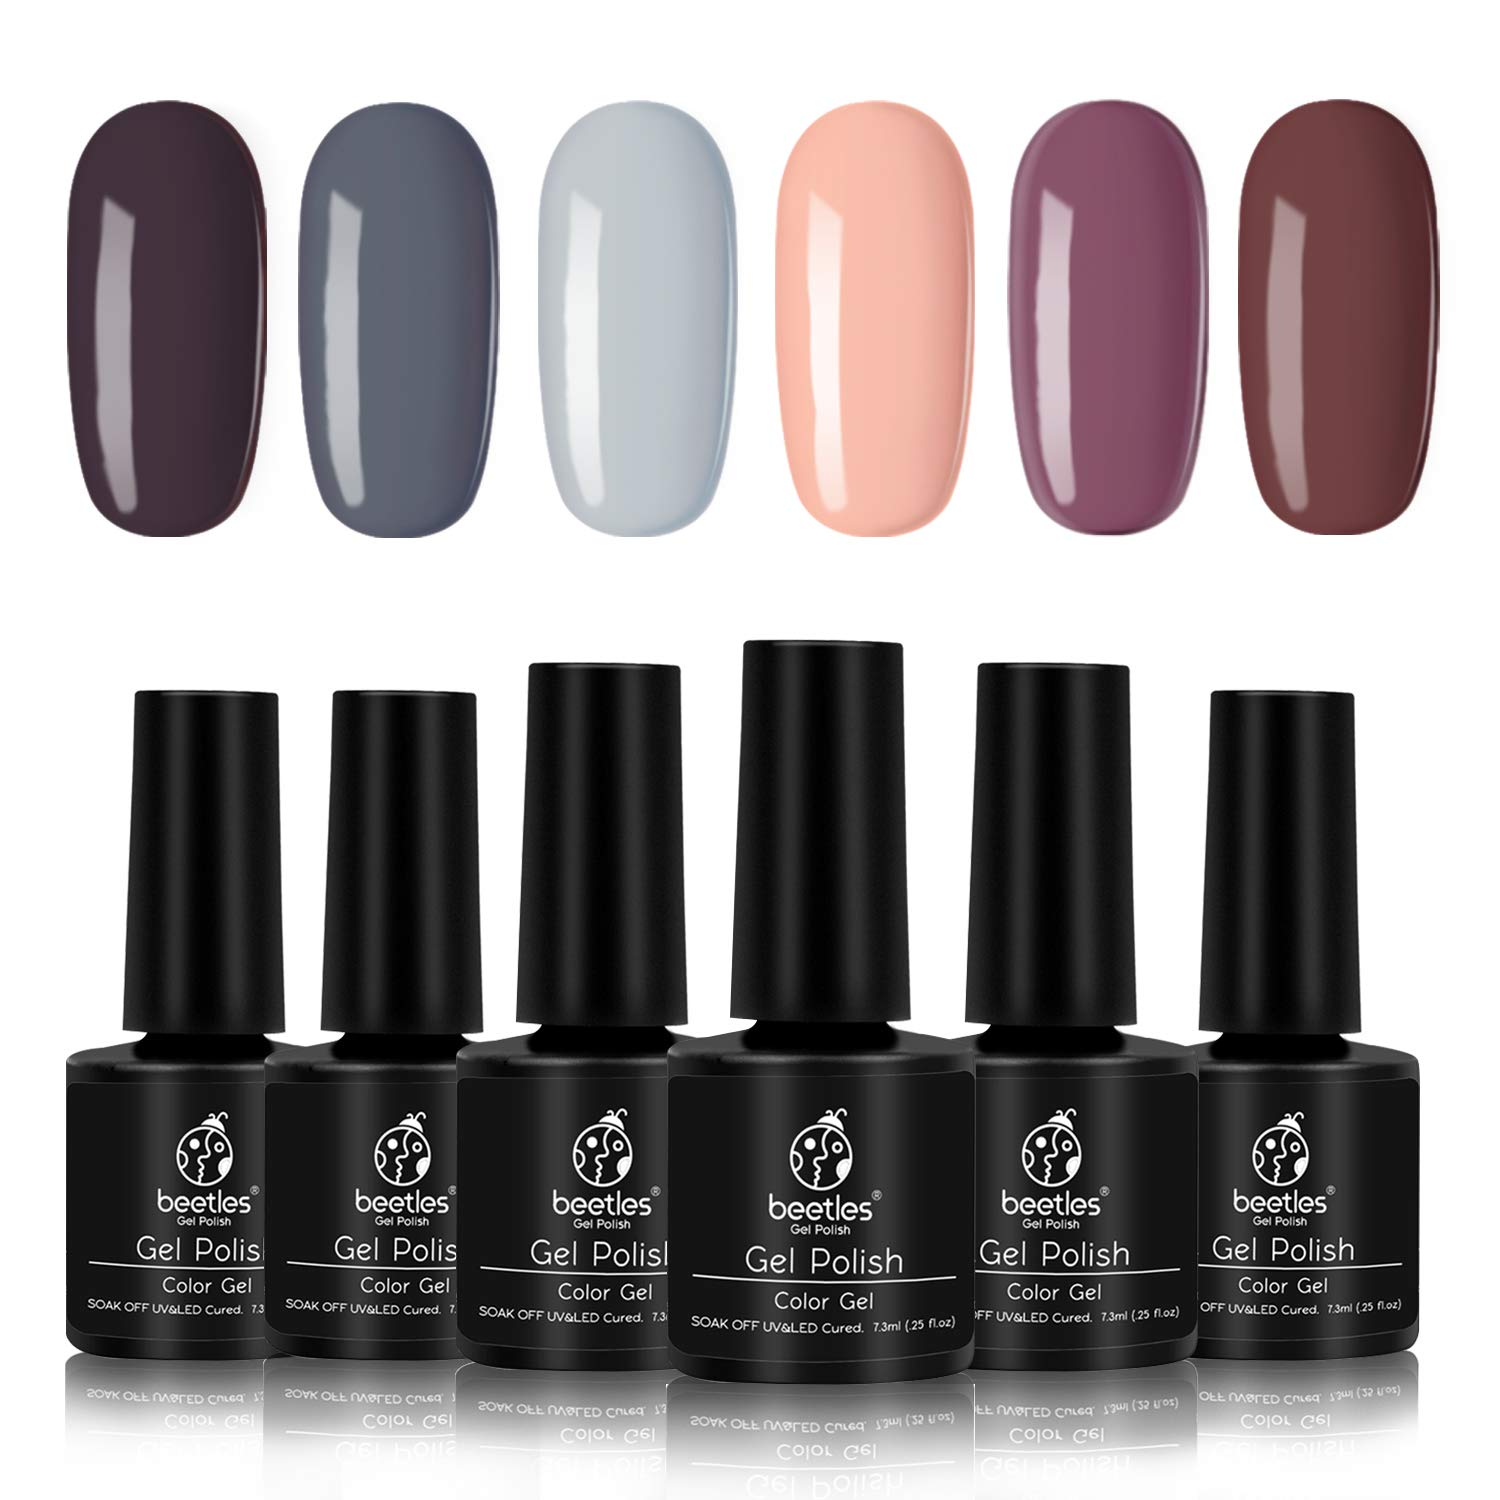 Beetles Gel Polish Set - Nude Gray Series 6 Colors Gel Nail Polish Kit Nail Art Gift Box, Soak Off LED UV Nail Gel, 7.5ml Each Bottle by beetles Gel Polish